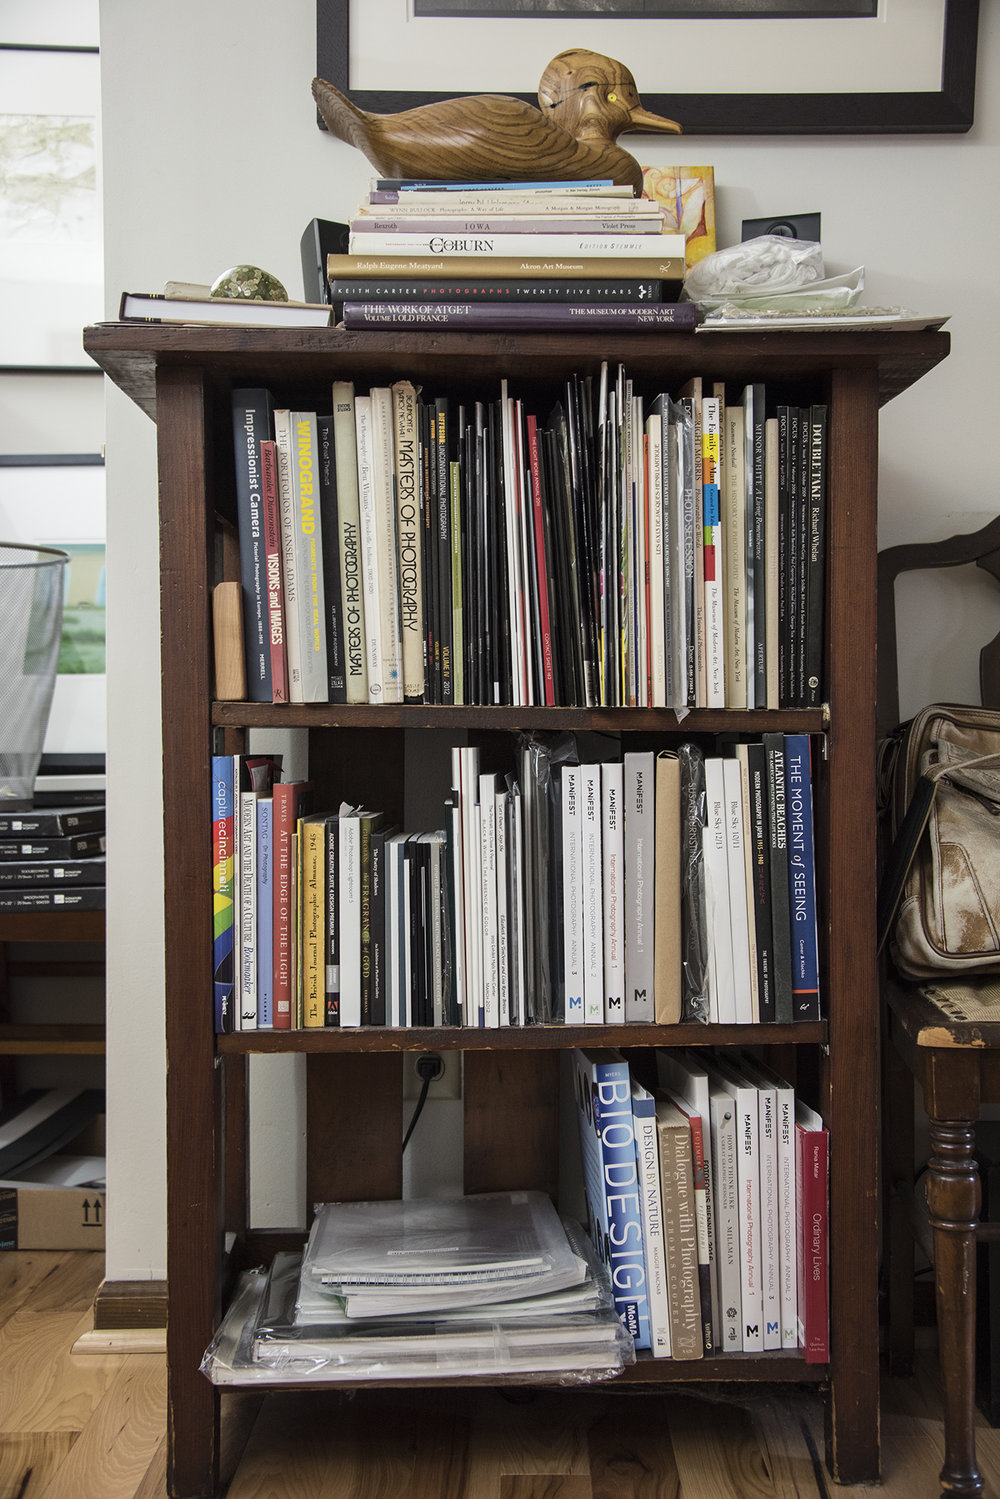 Kent Krugh's mallard-topped photobook library.